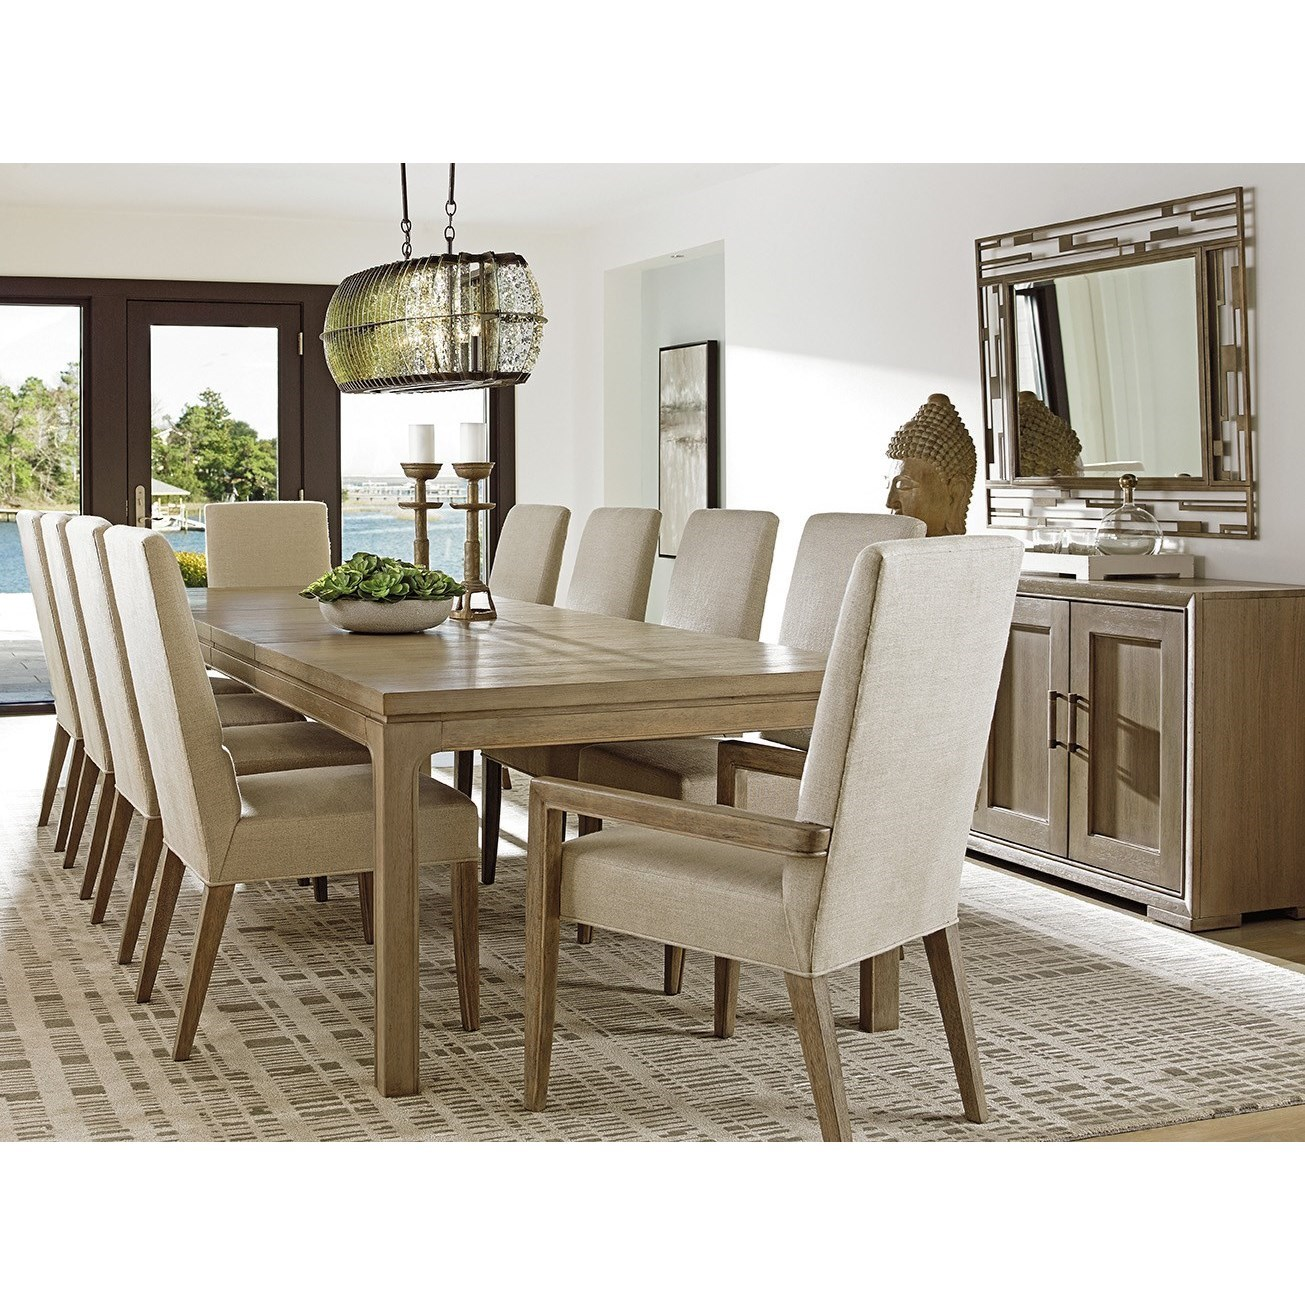 Shadow Play Dining Room Group by Lexington at Johnny Janosik